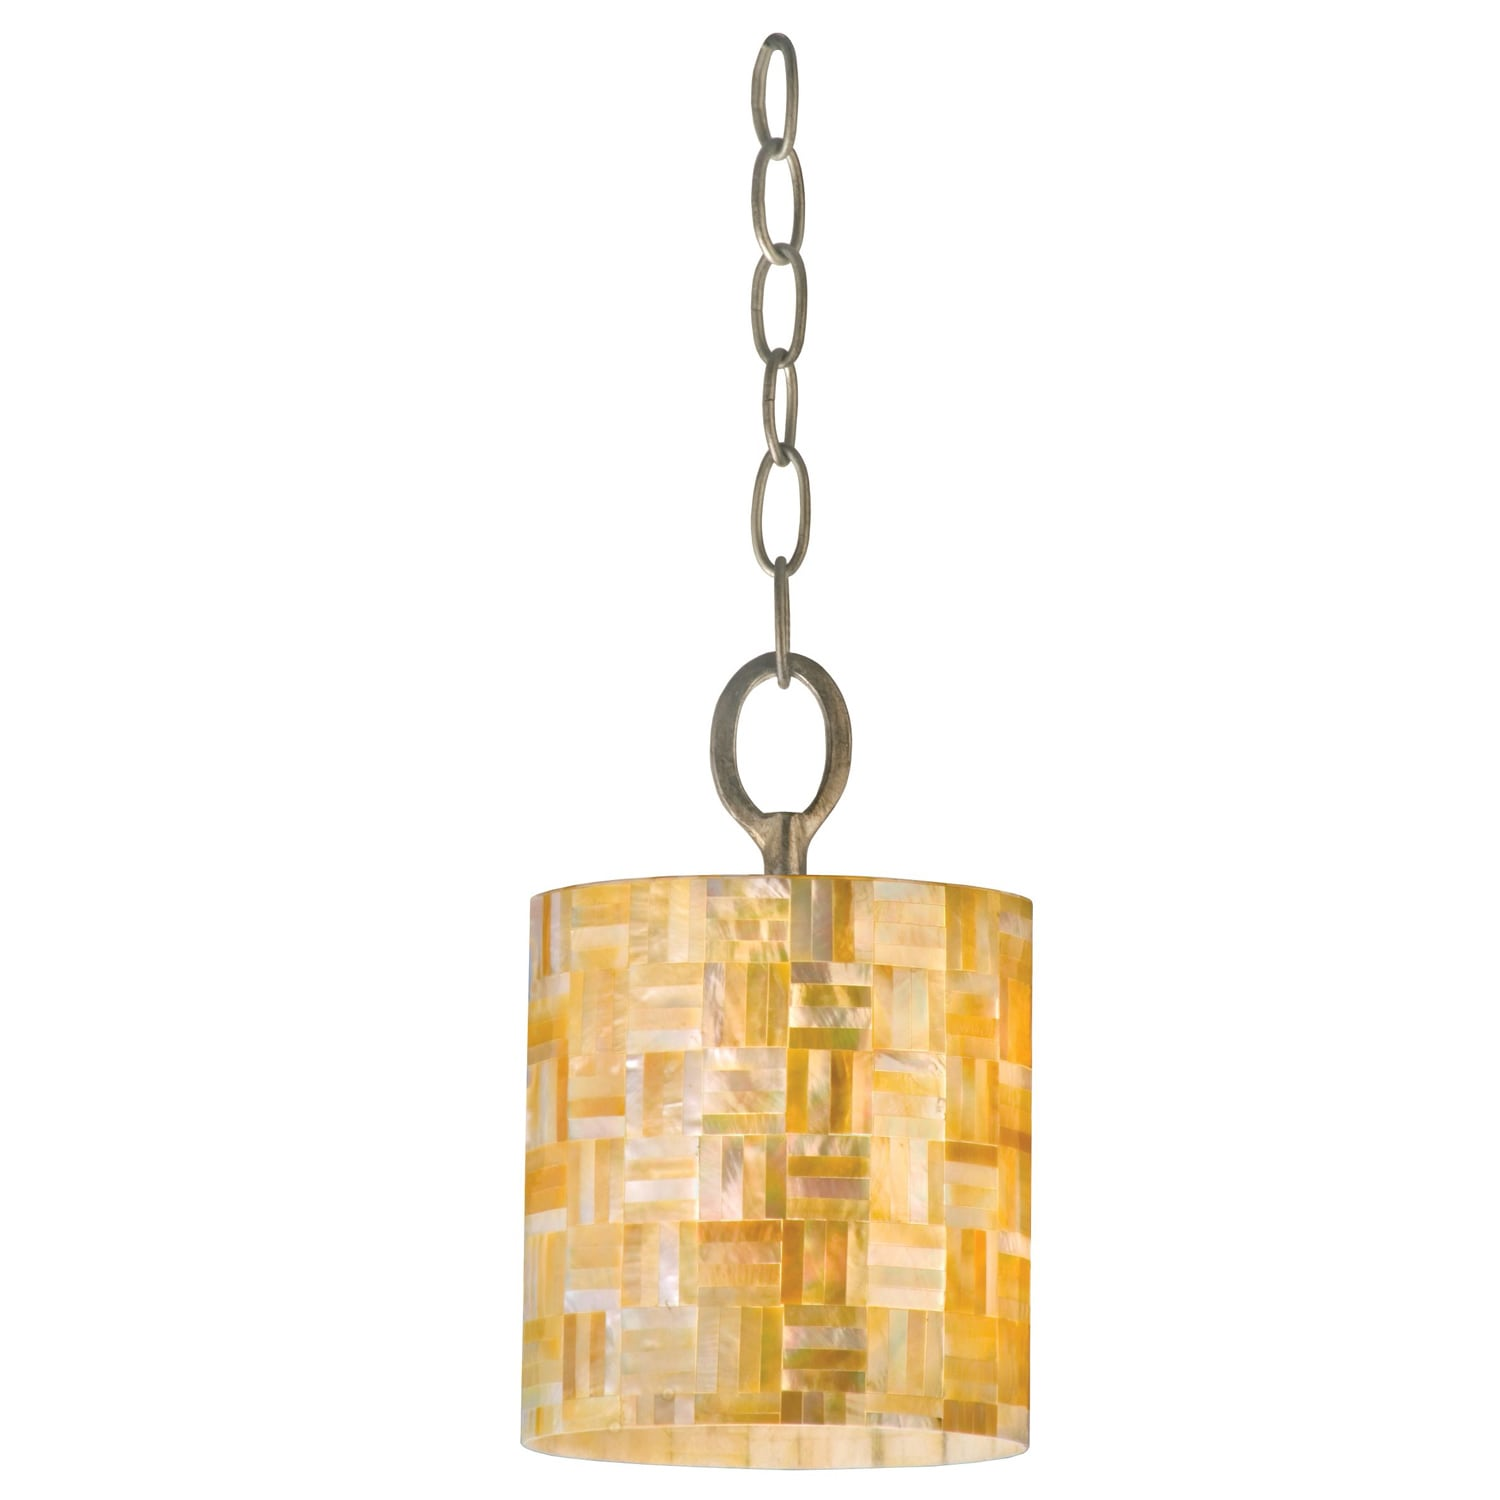 Varaluz Naturals 1-light Yellow Mother-of-Pearl Shell Mini Pendant Light Fixture